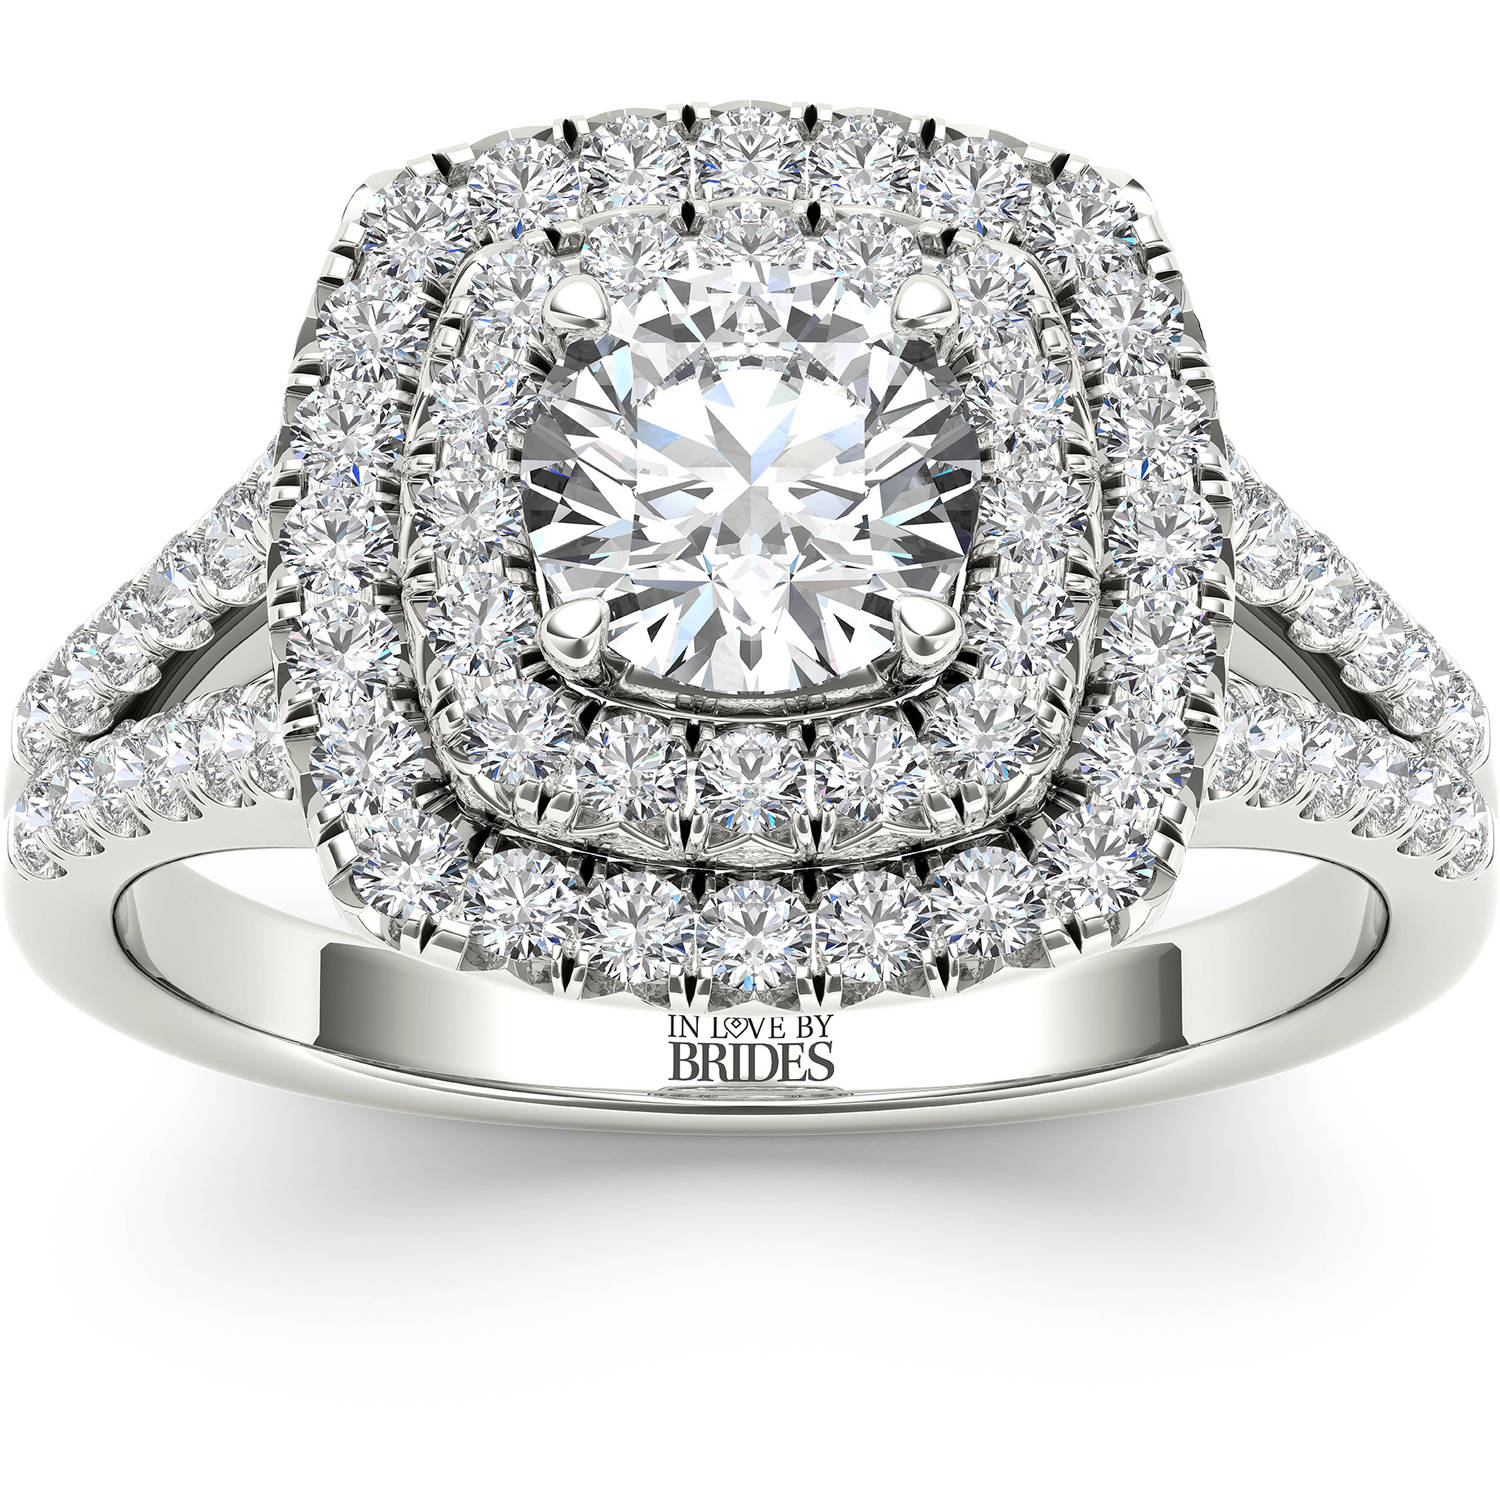 In Love By Brides  2.00ct Tw Diamond Cus